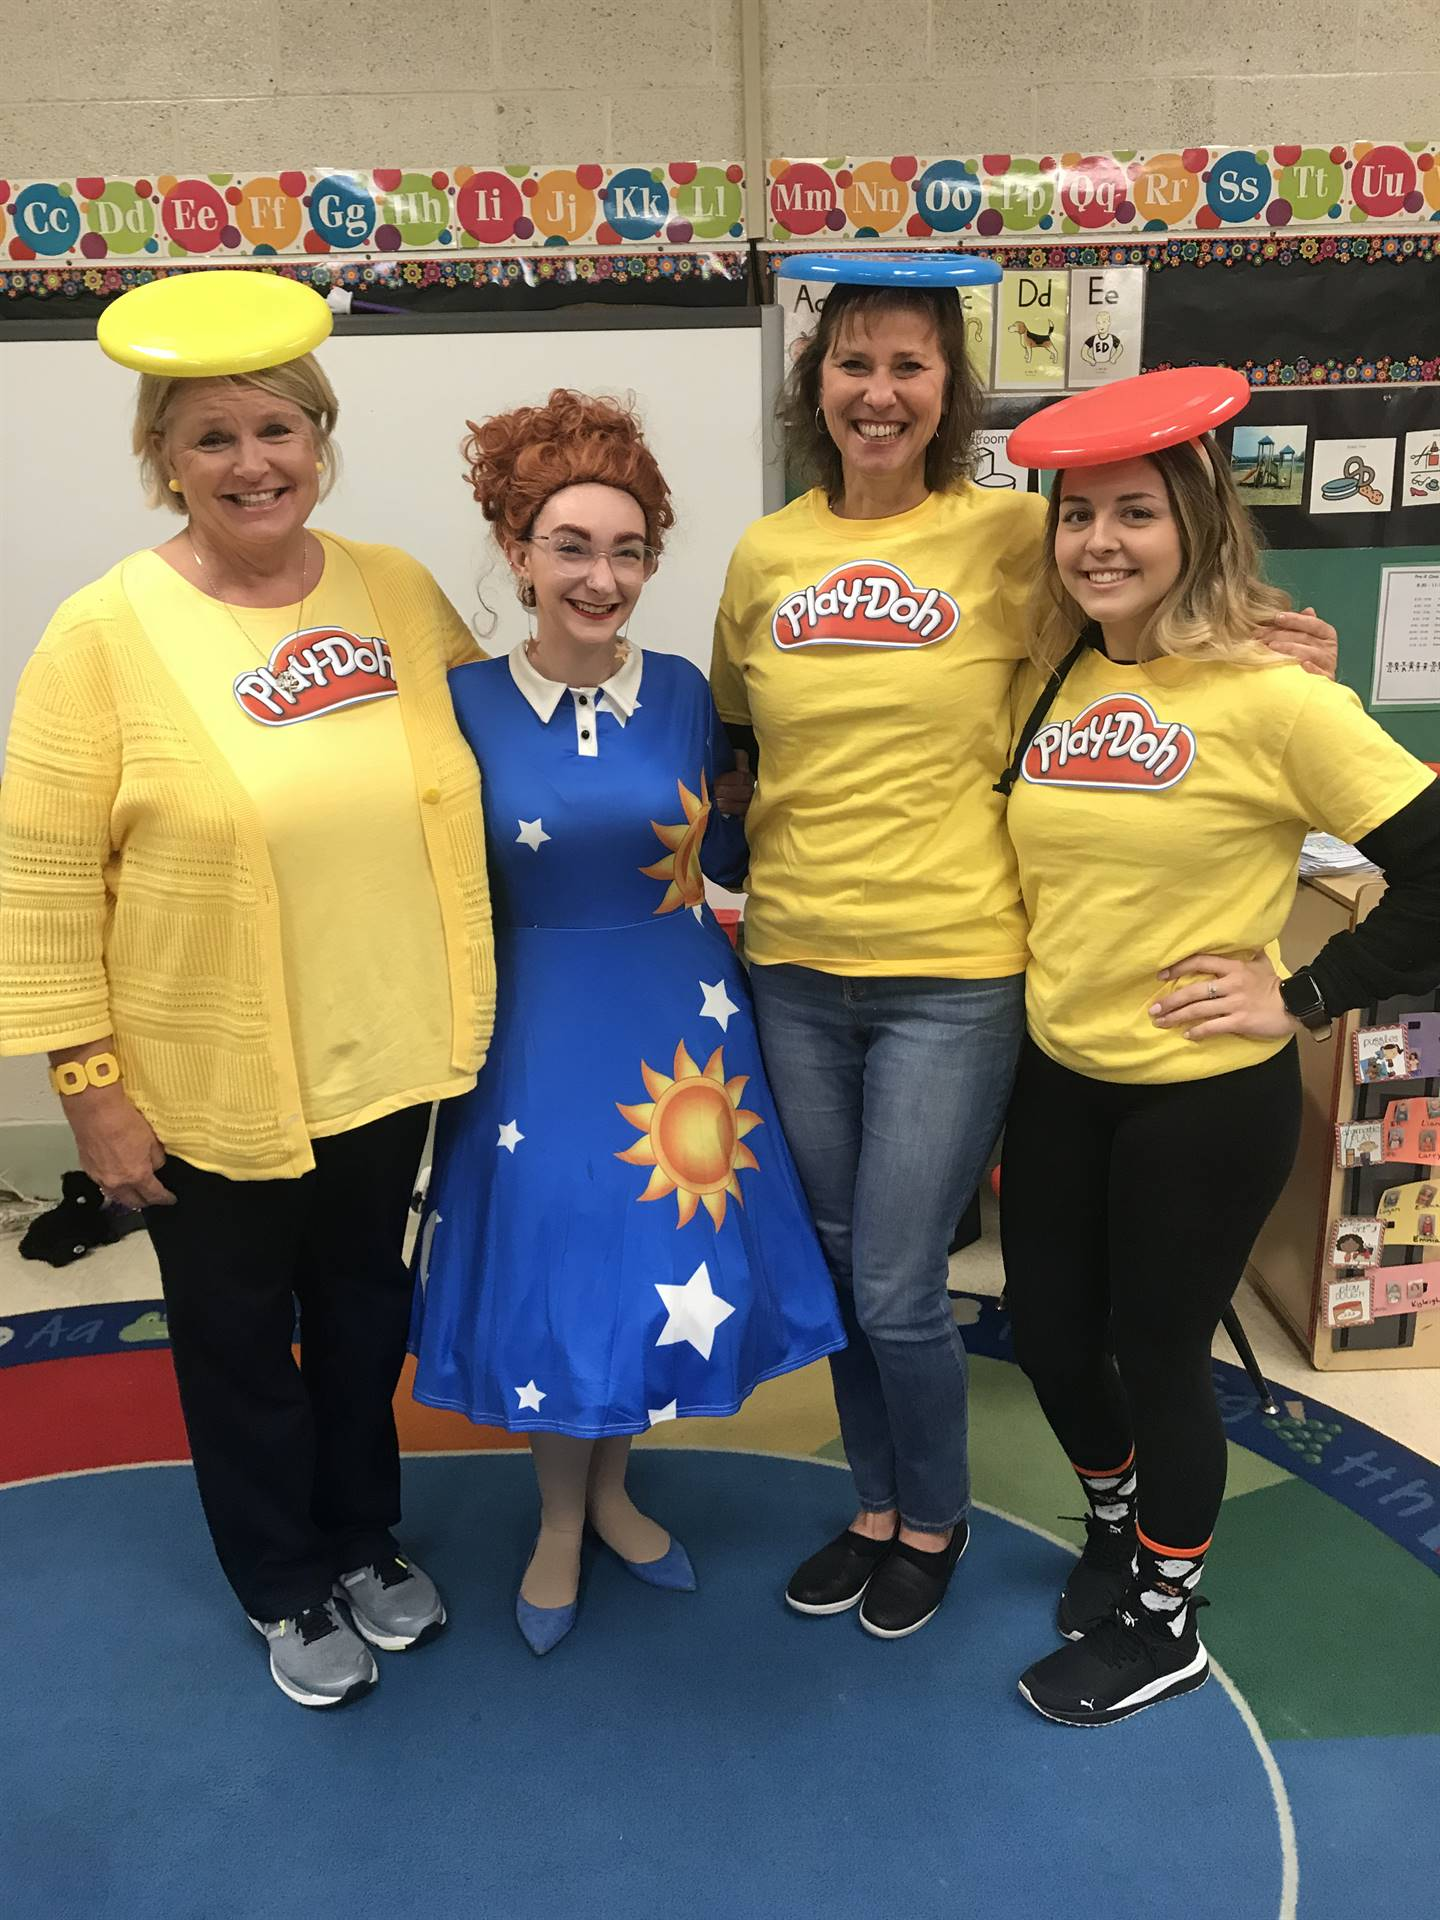 4 ladies with playdoh costumes